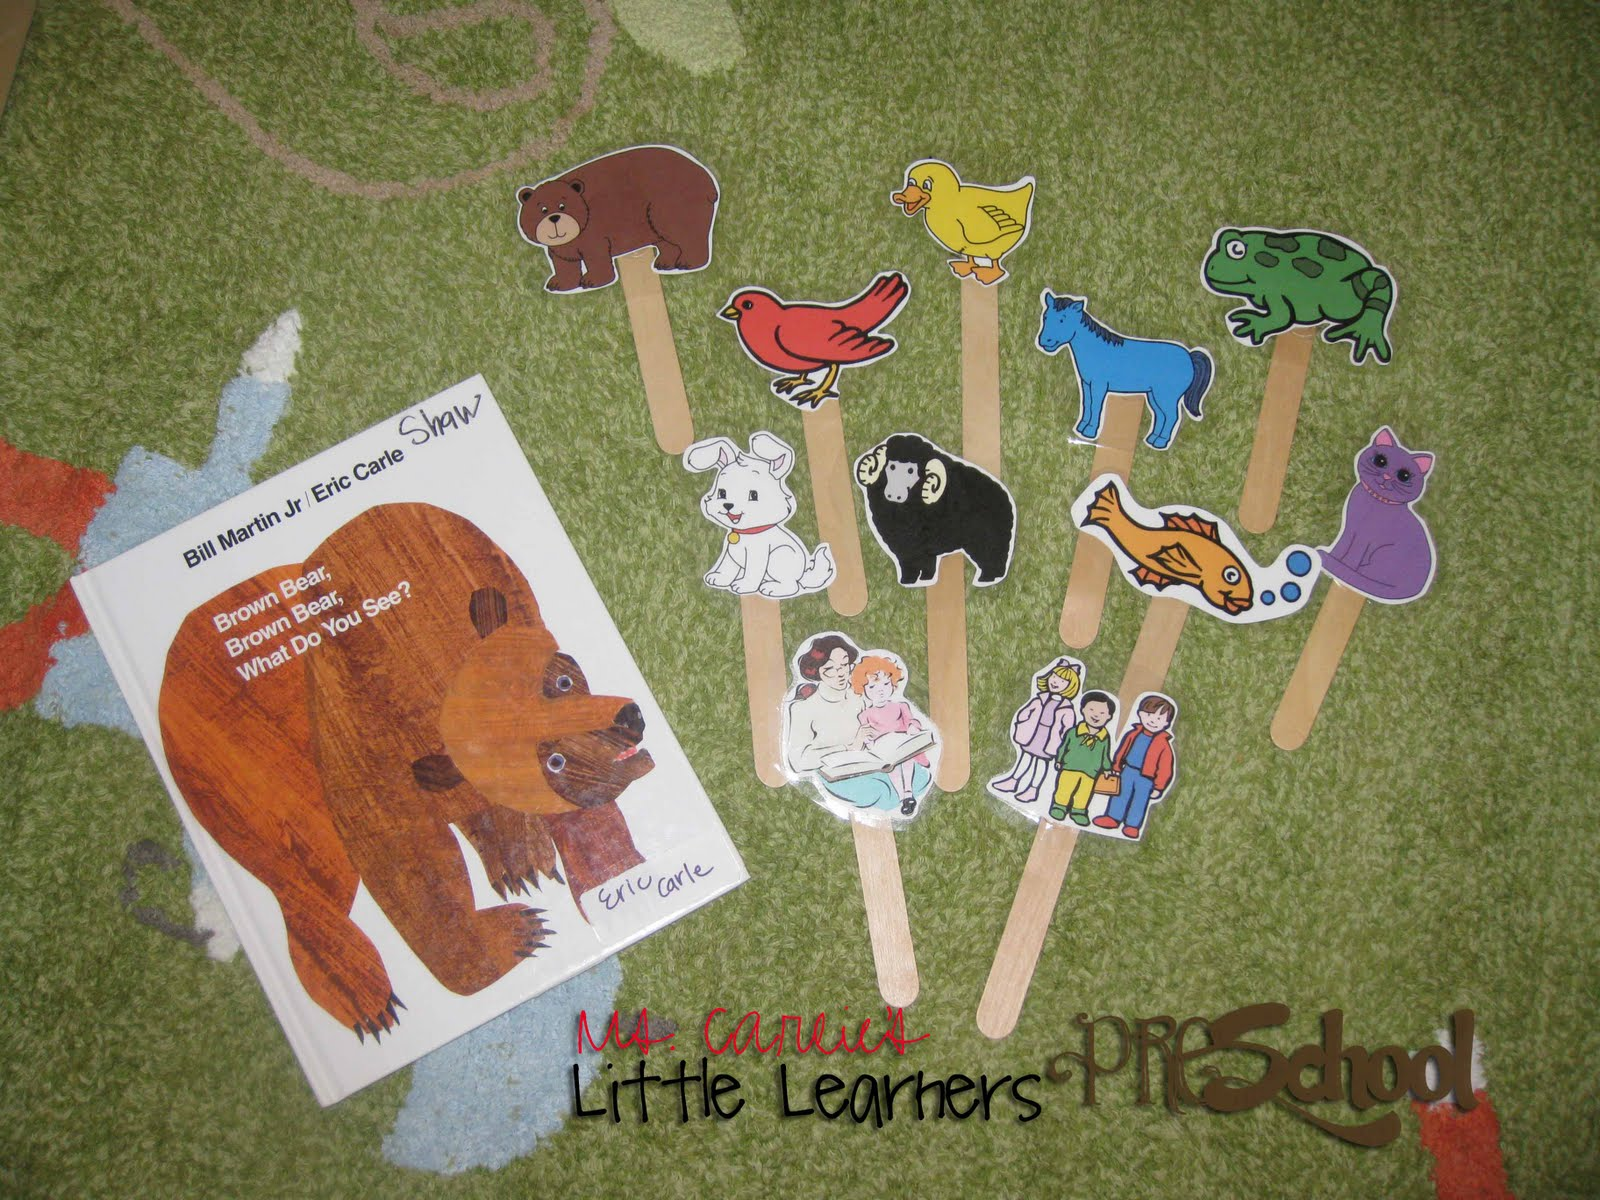 Ms Carlie S Little Learners Preschool Brown Bear Brown Bear What Do You See